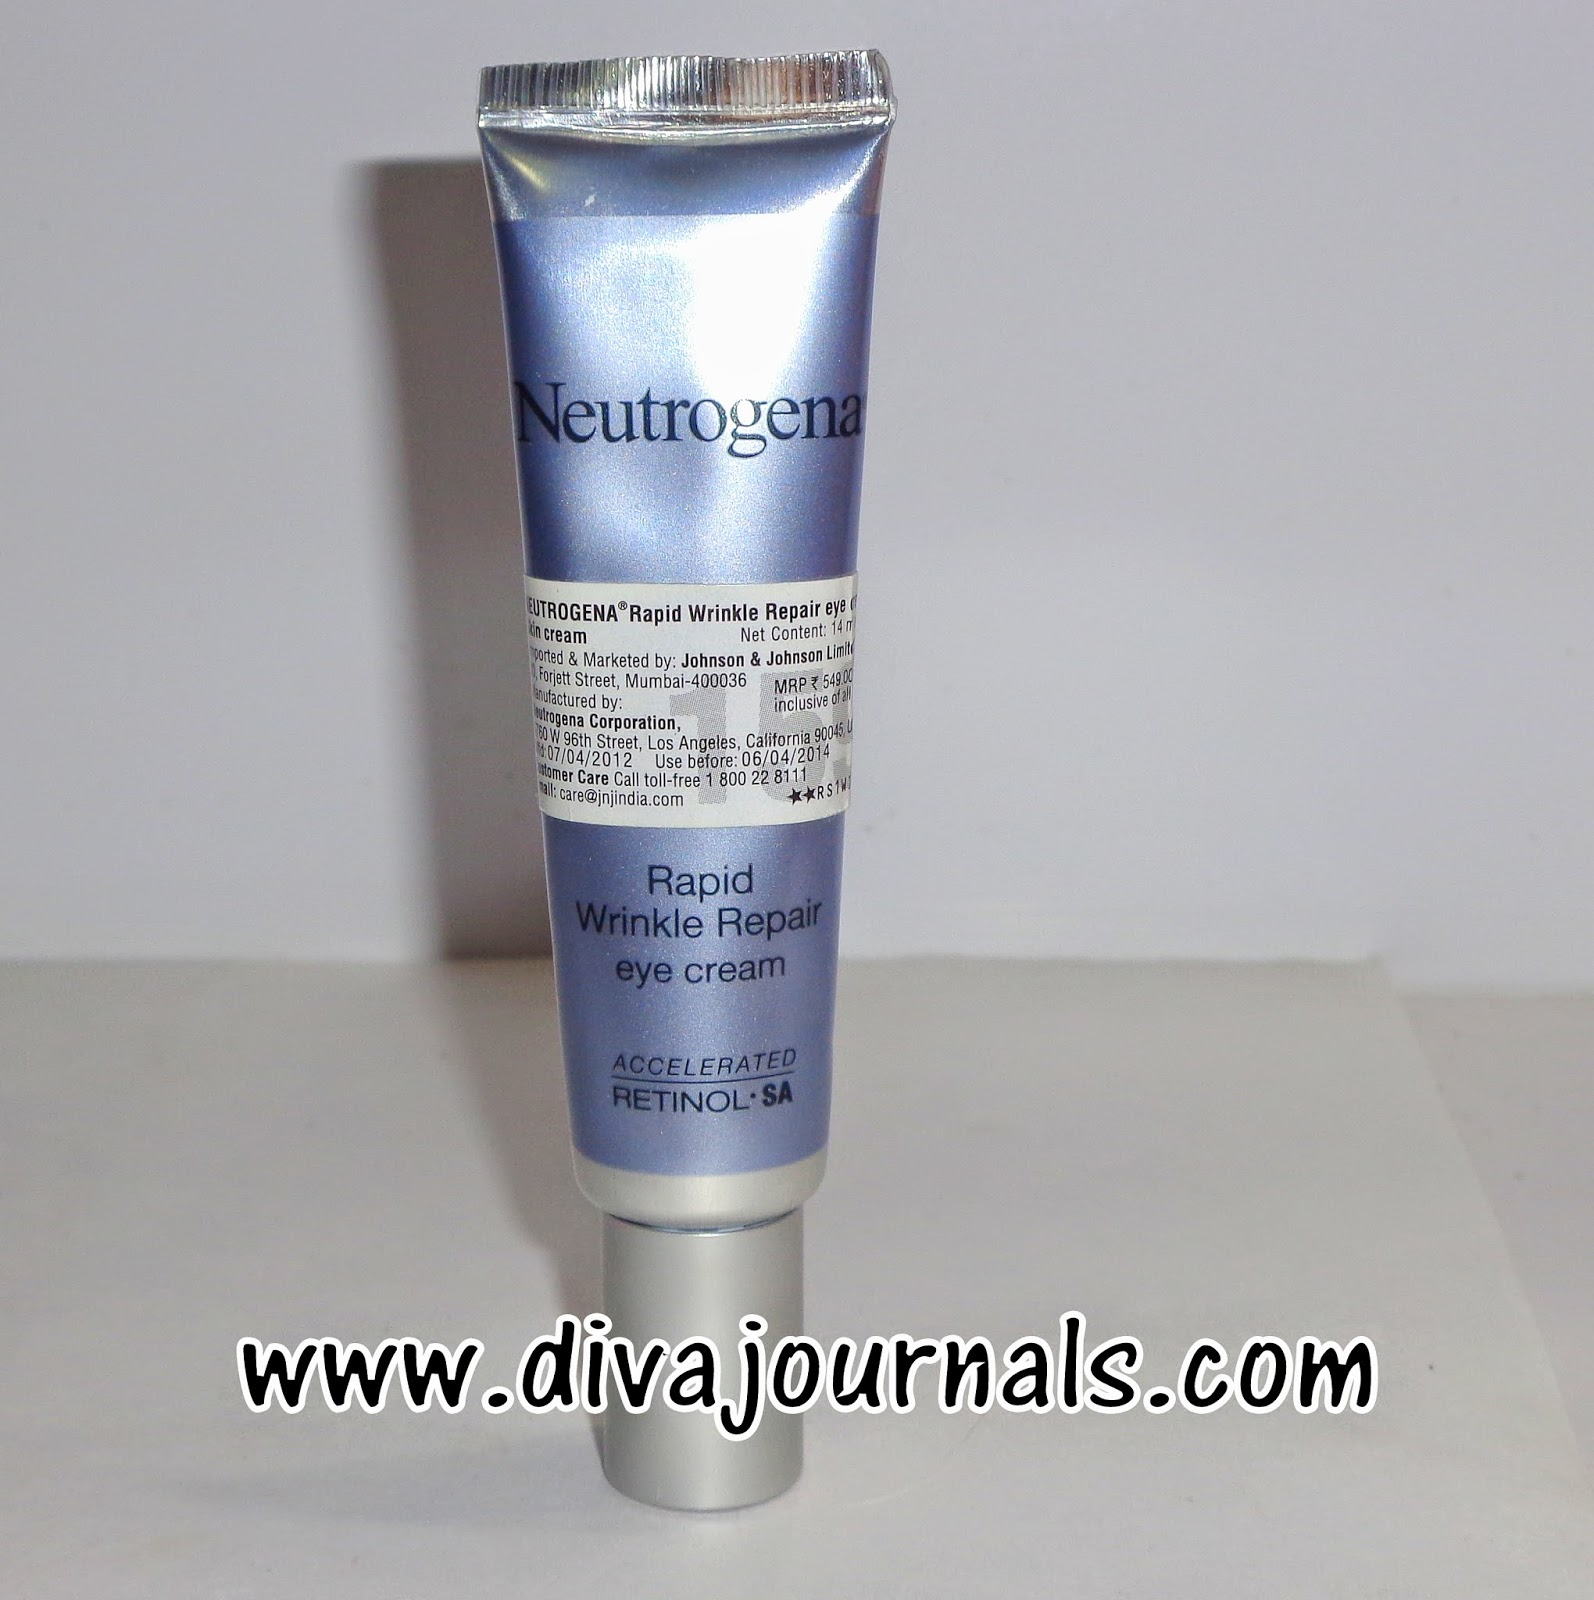 Neutrogena Rapid Wrinkle Repair Eye Cream Review